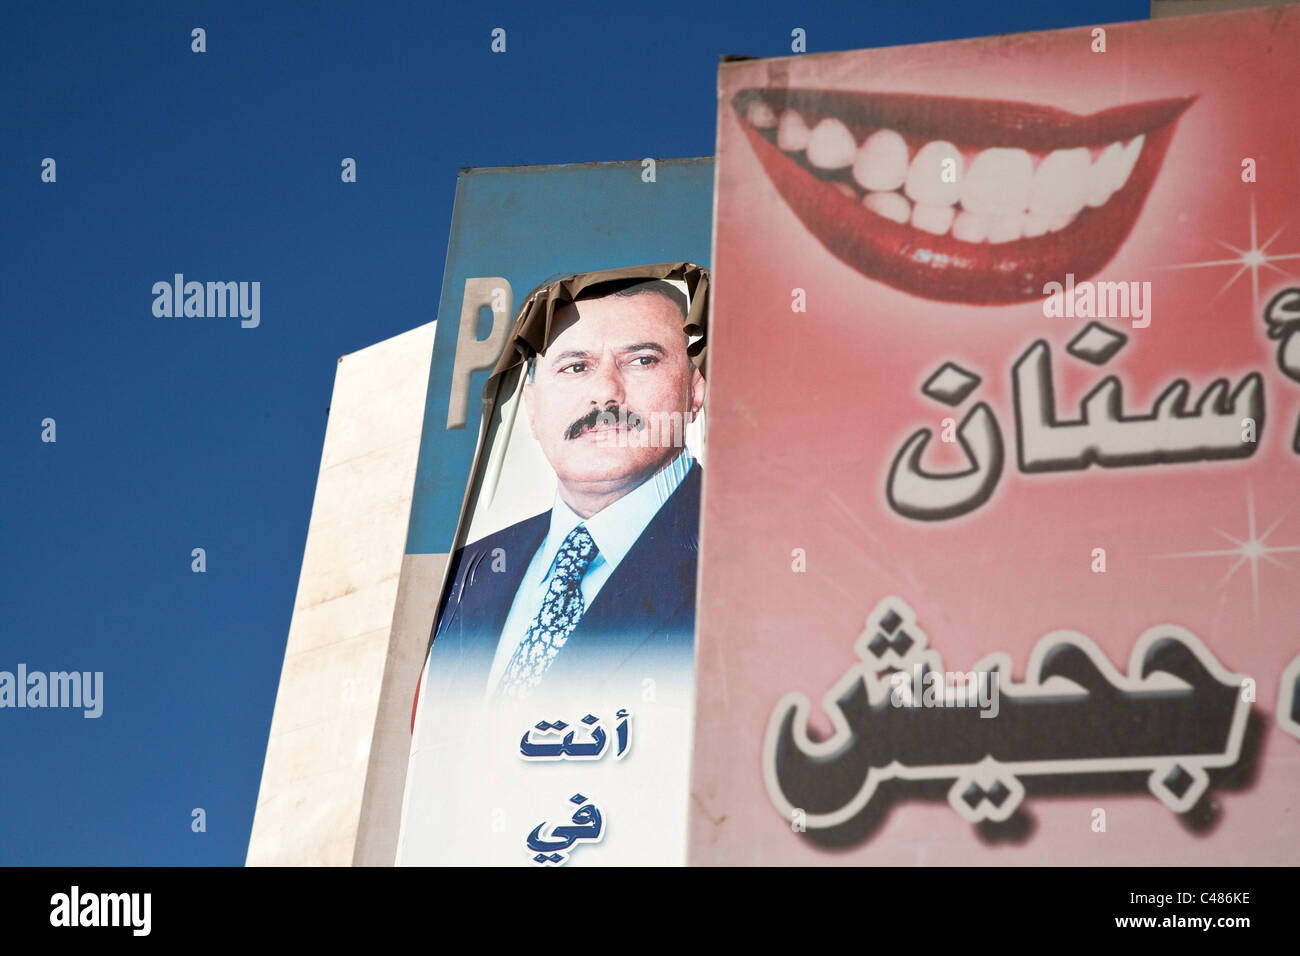 A poster of the president Ali Abdullah Saleh on the wall in Sana'a, Yemen. - Stock Image